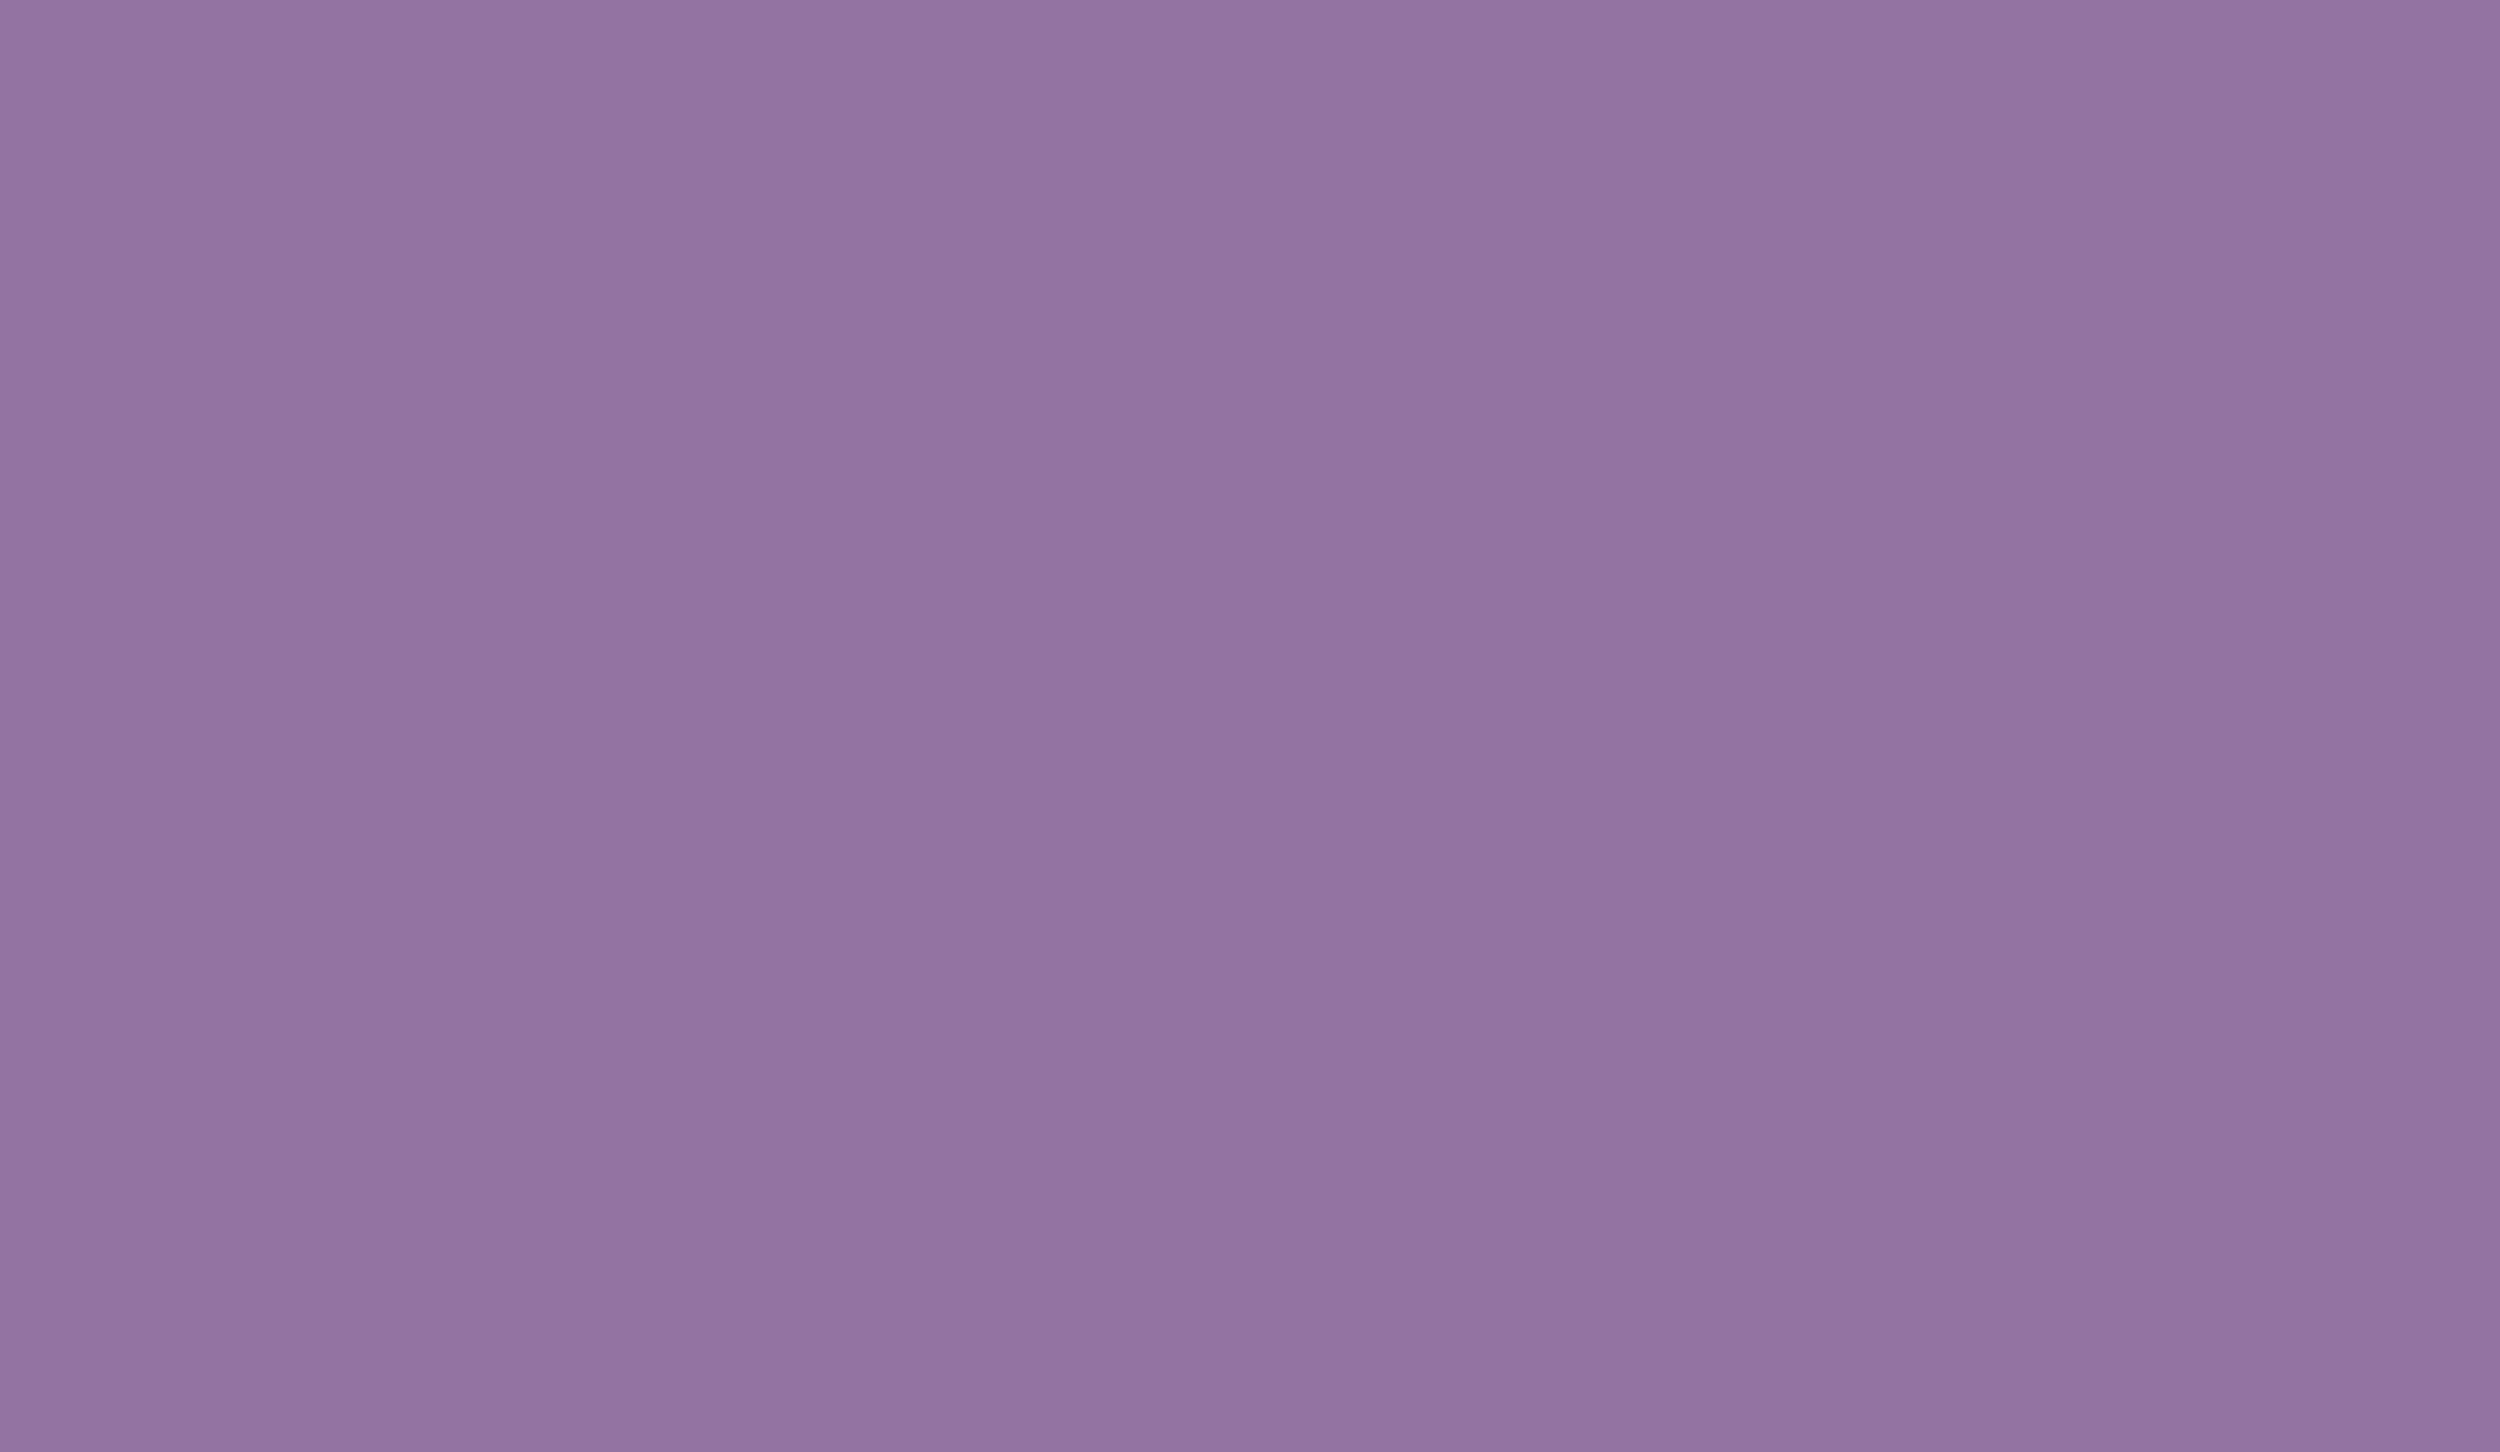 purple-bg.jpg